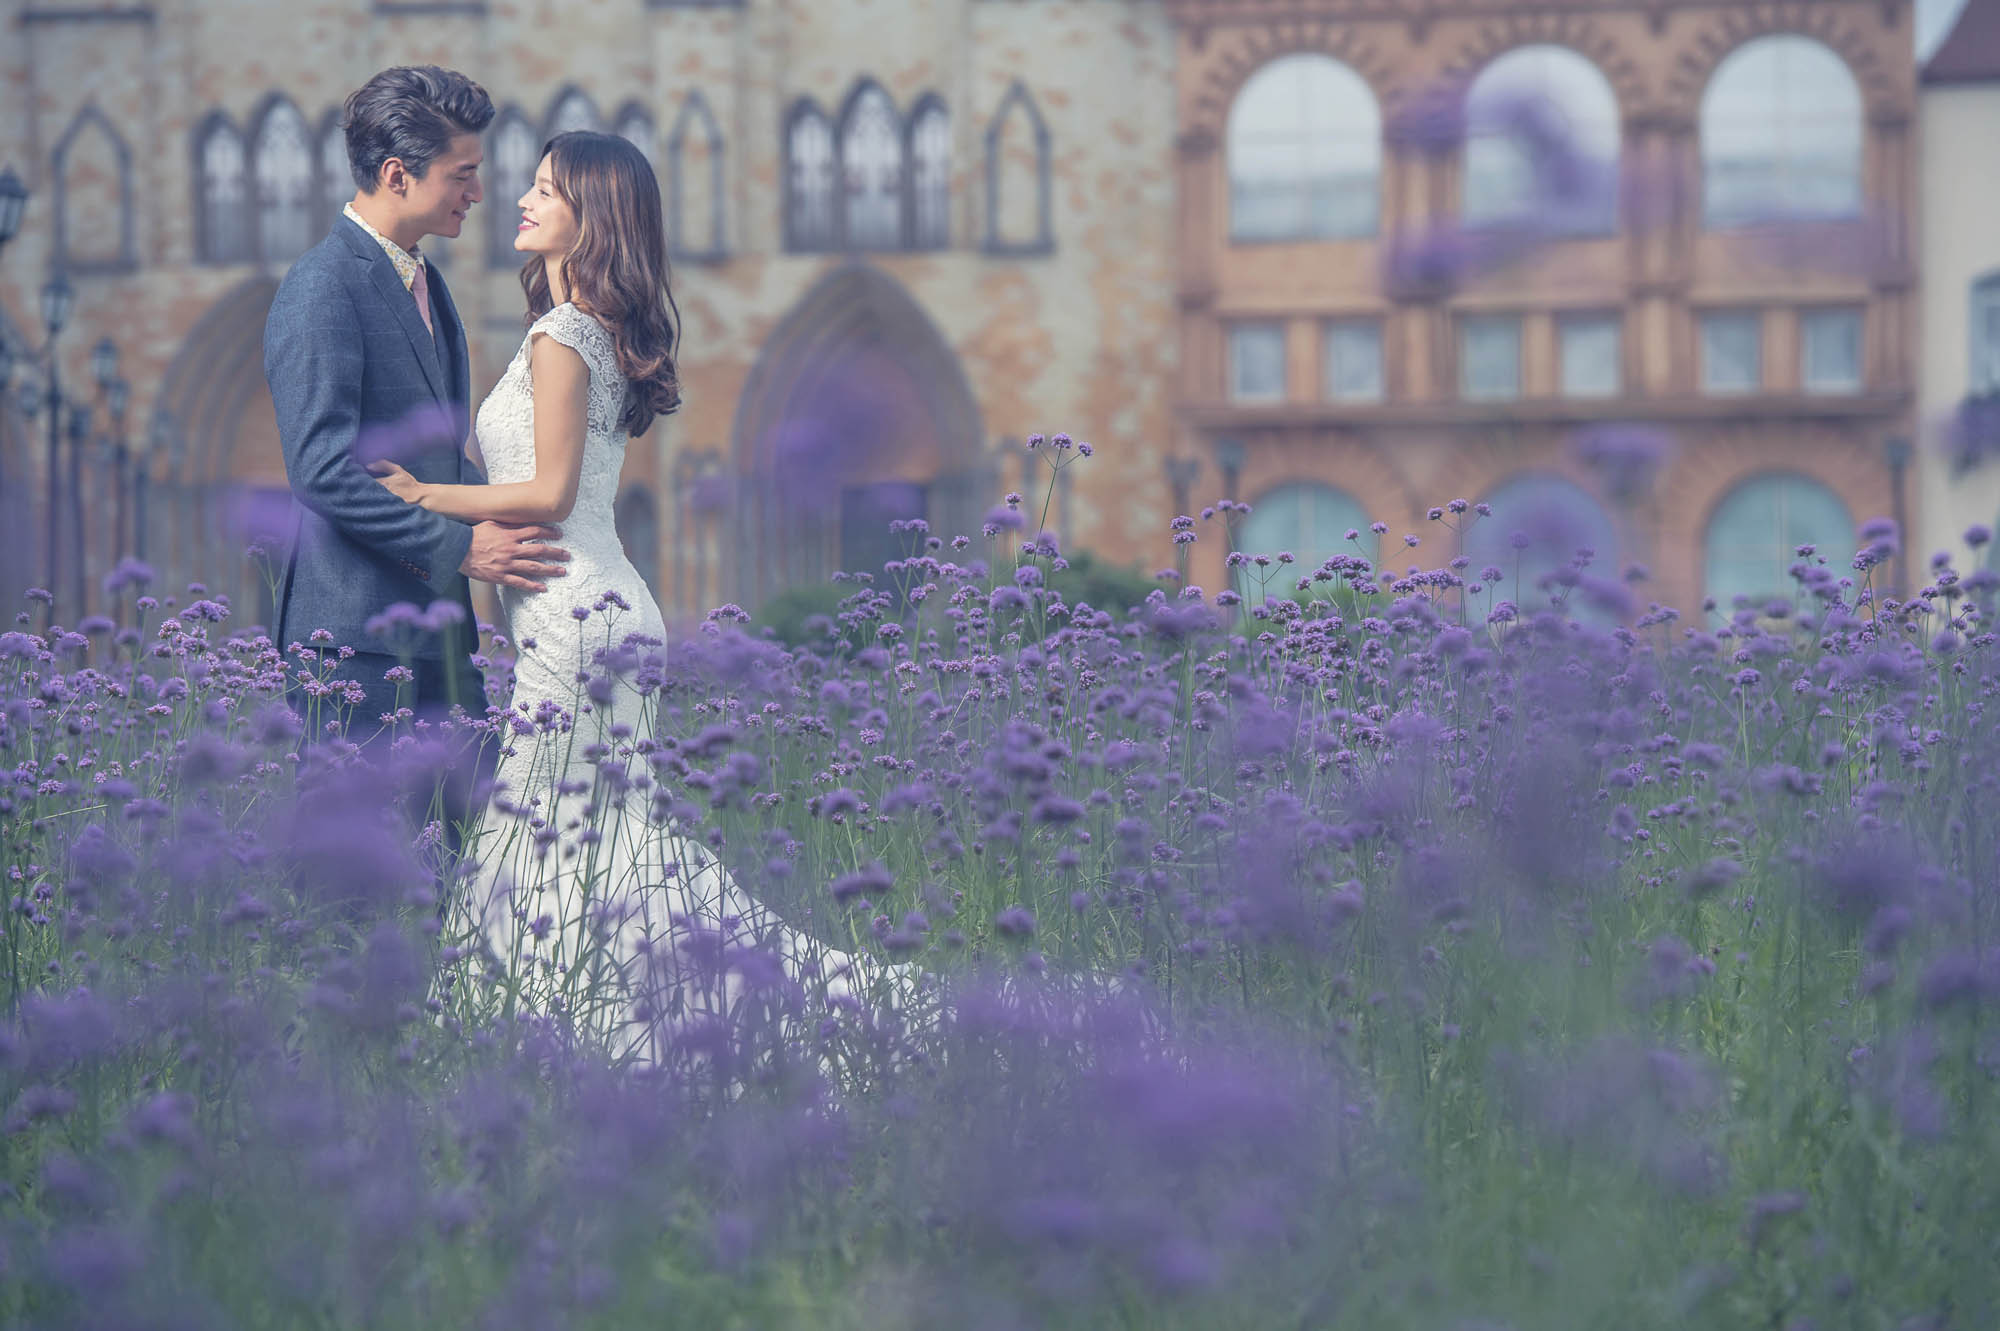 Bride and groom in field of purple flowers, by CM Leung